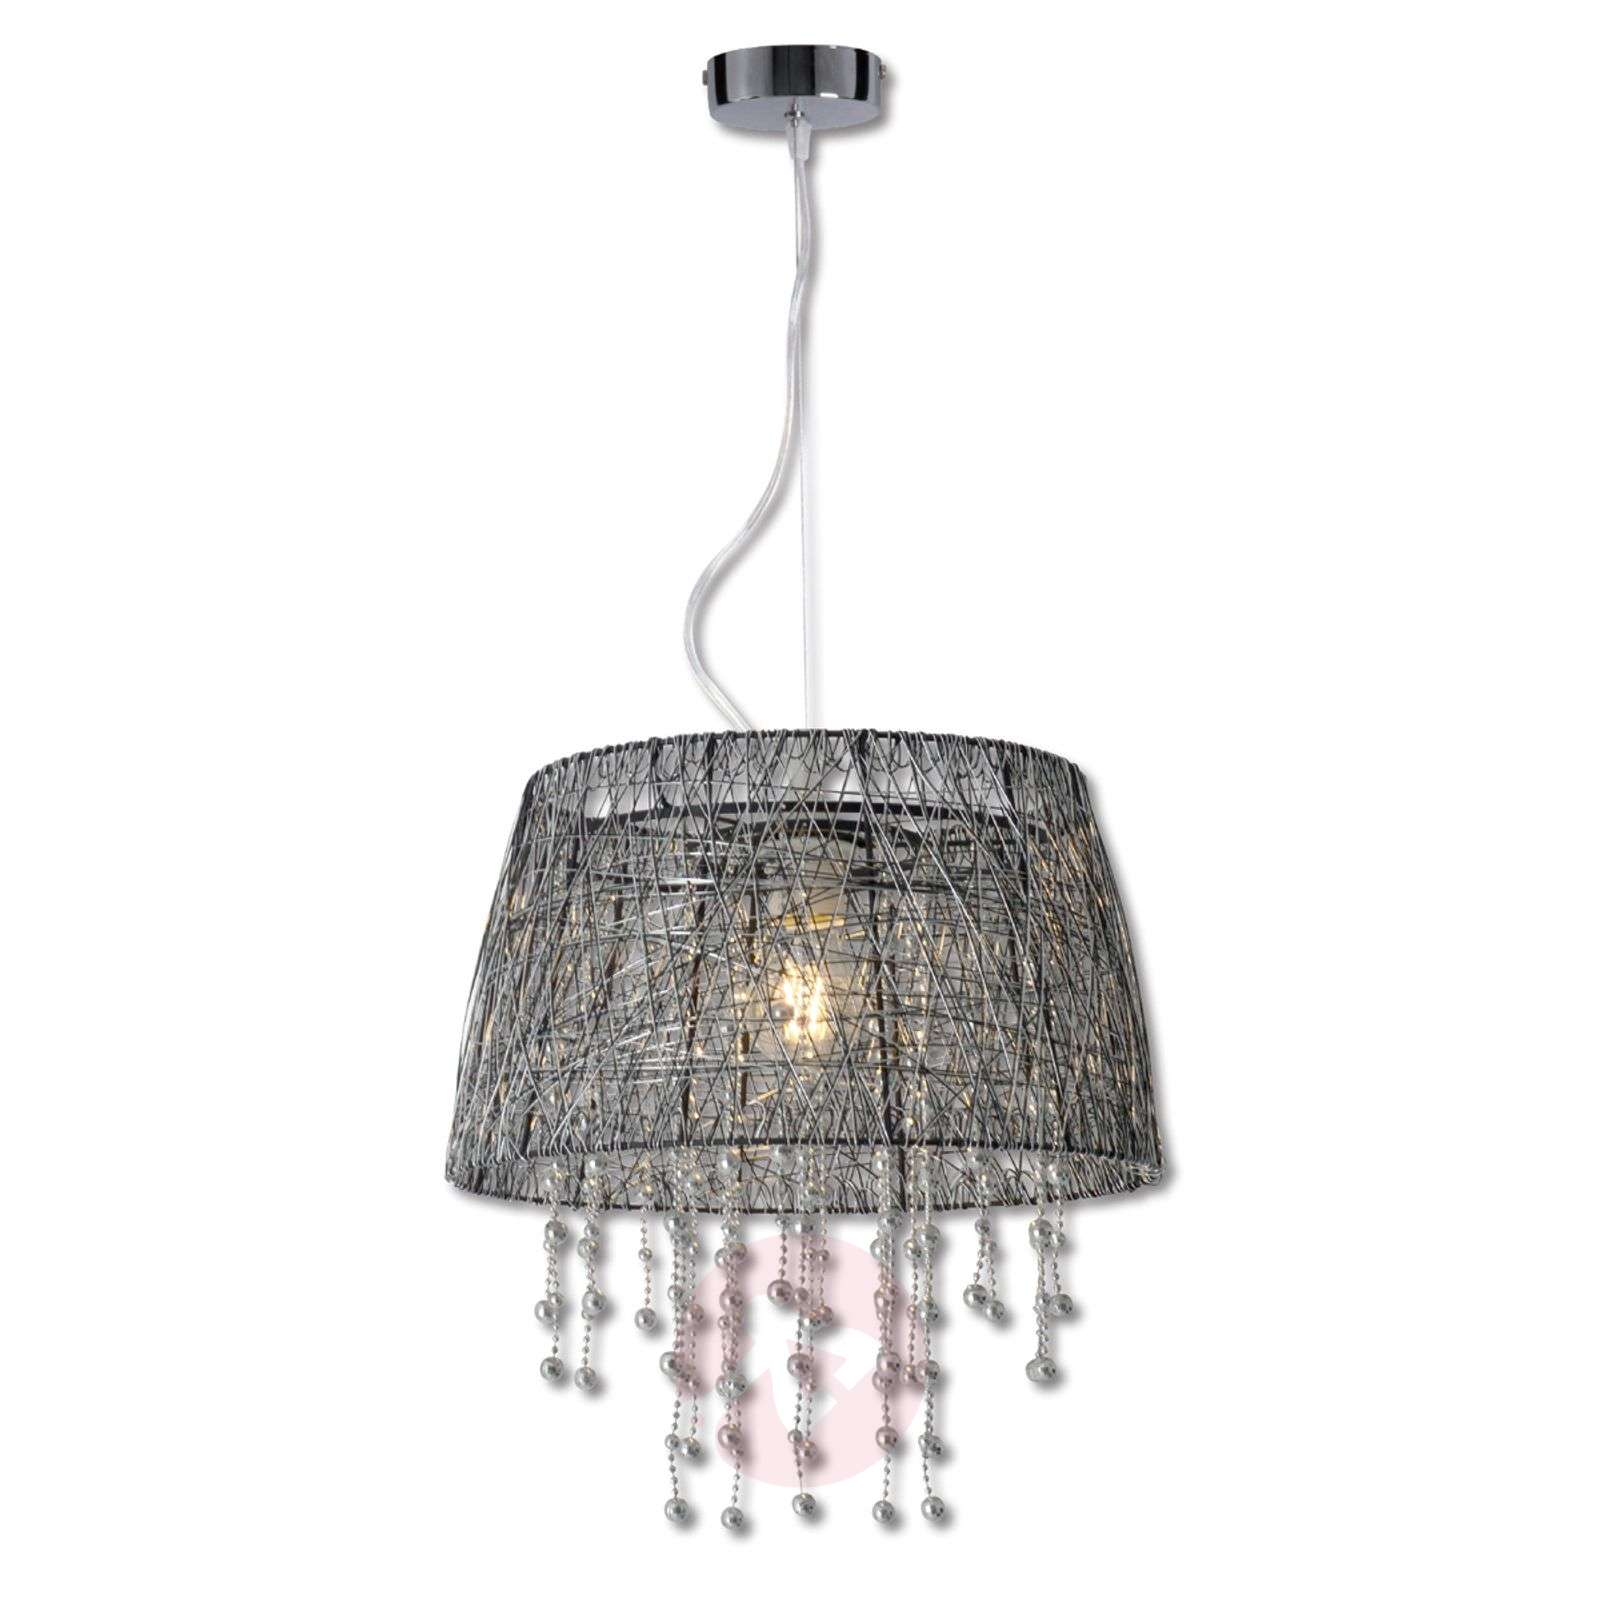 Frizzy pendant light with black wire lampshade lights frizzy pendant light with black wire lampshade 7000873 01 aloadofball Choice Image